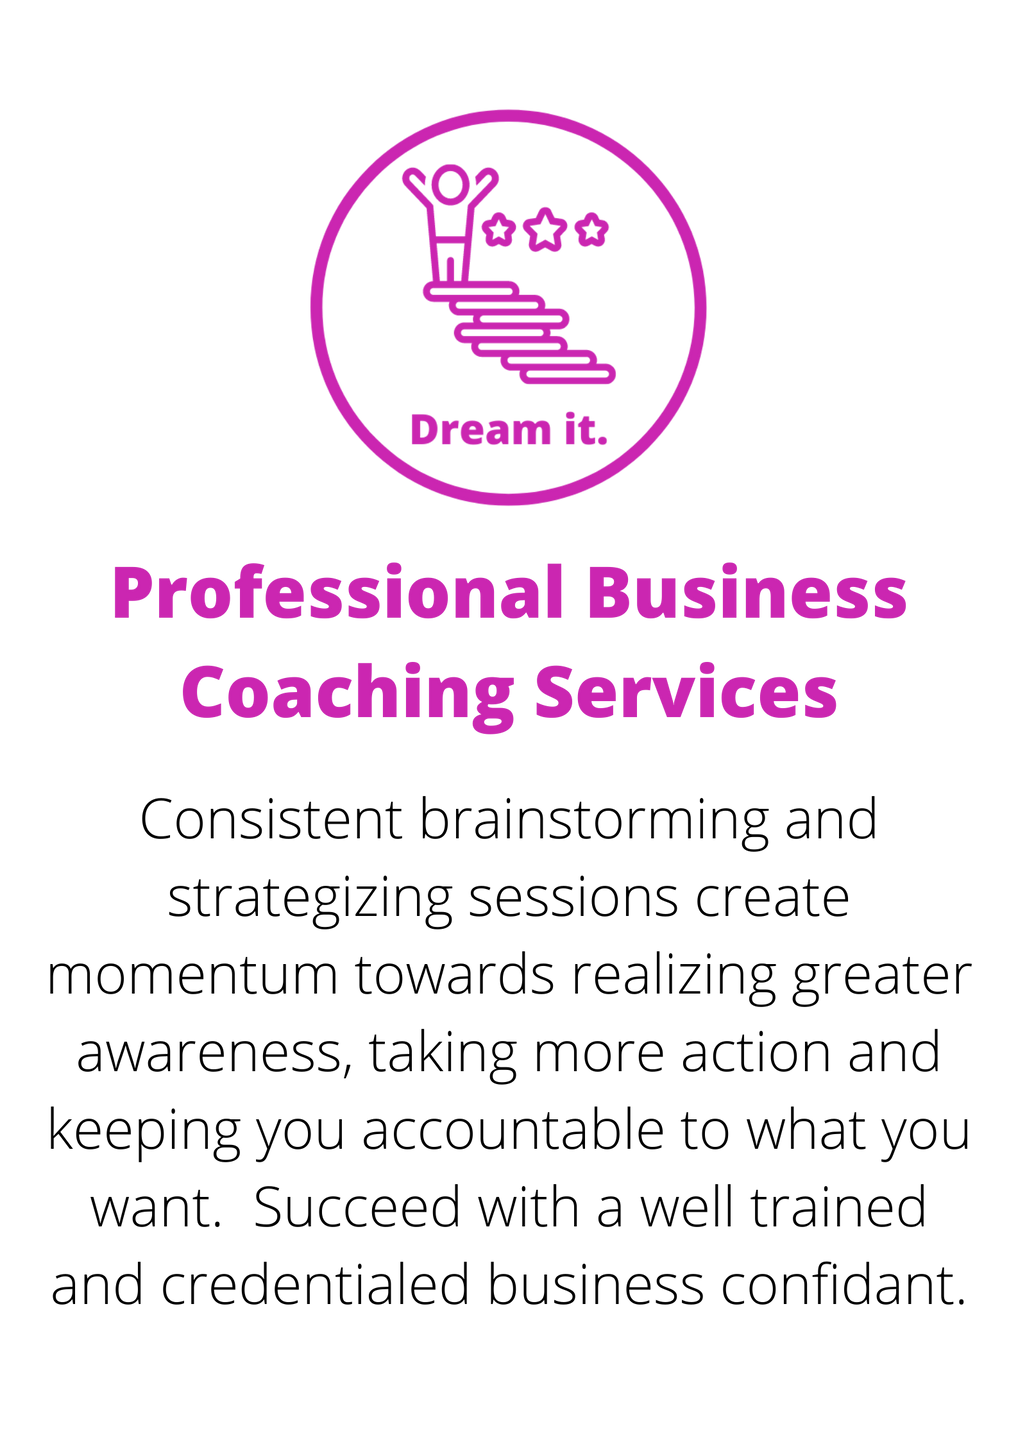 Professional Business Coaching Services